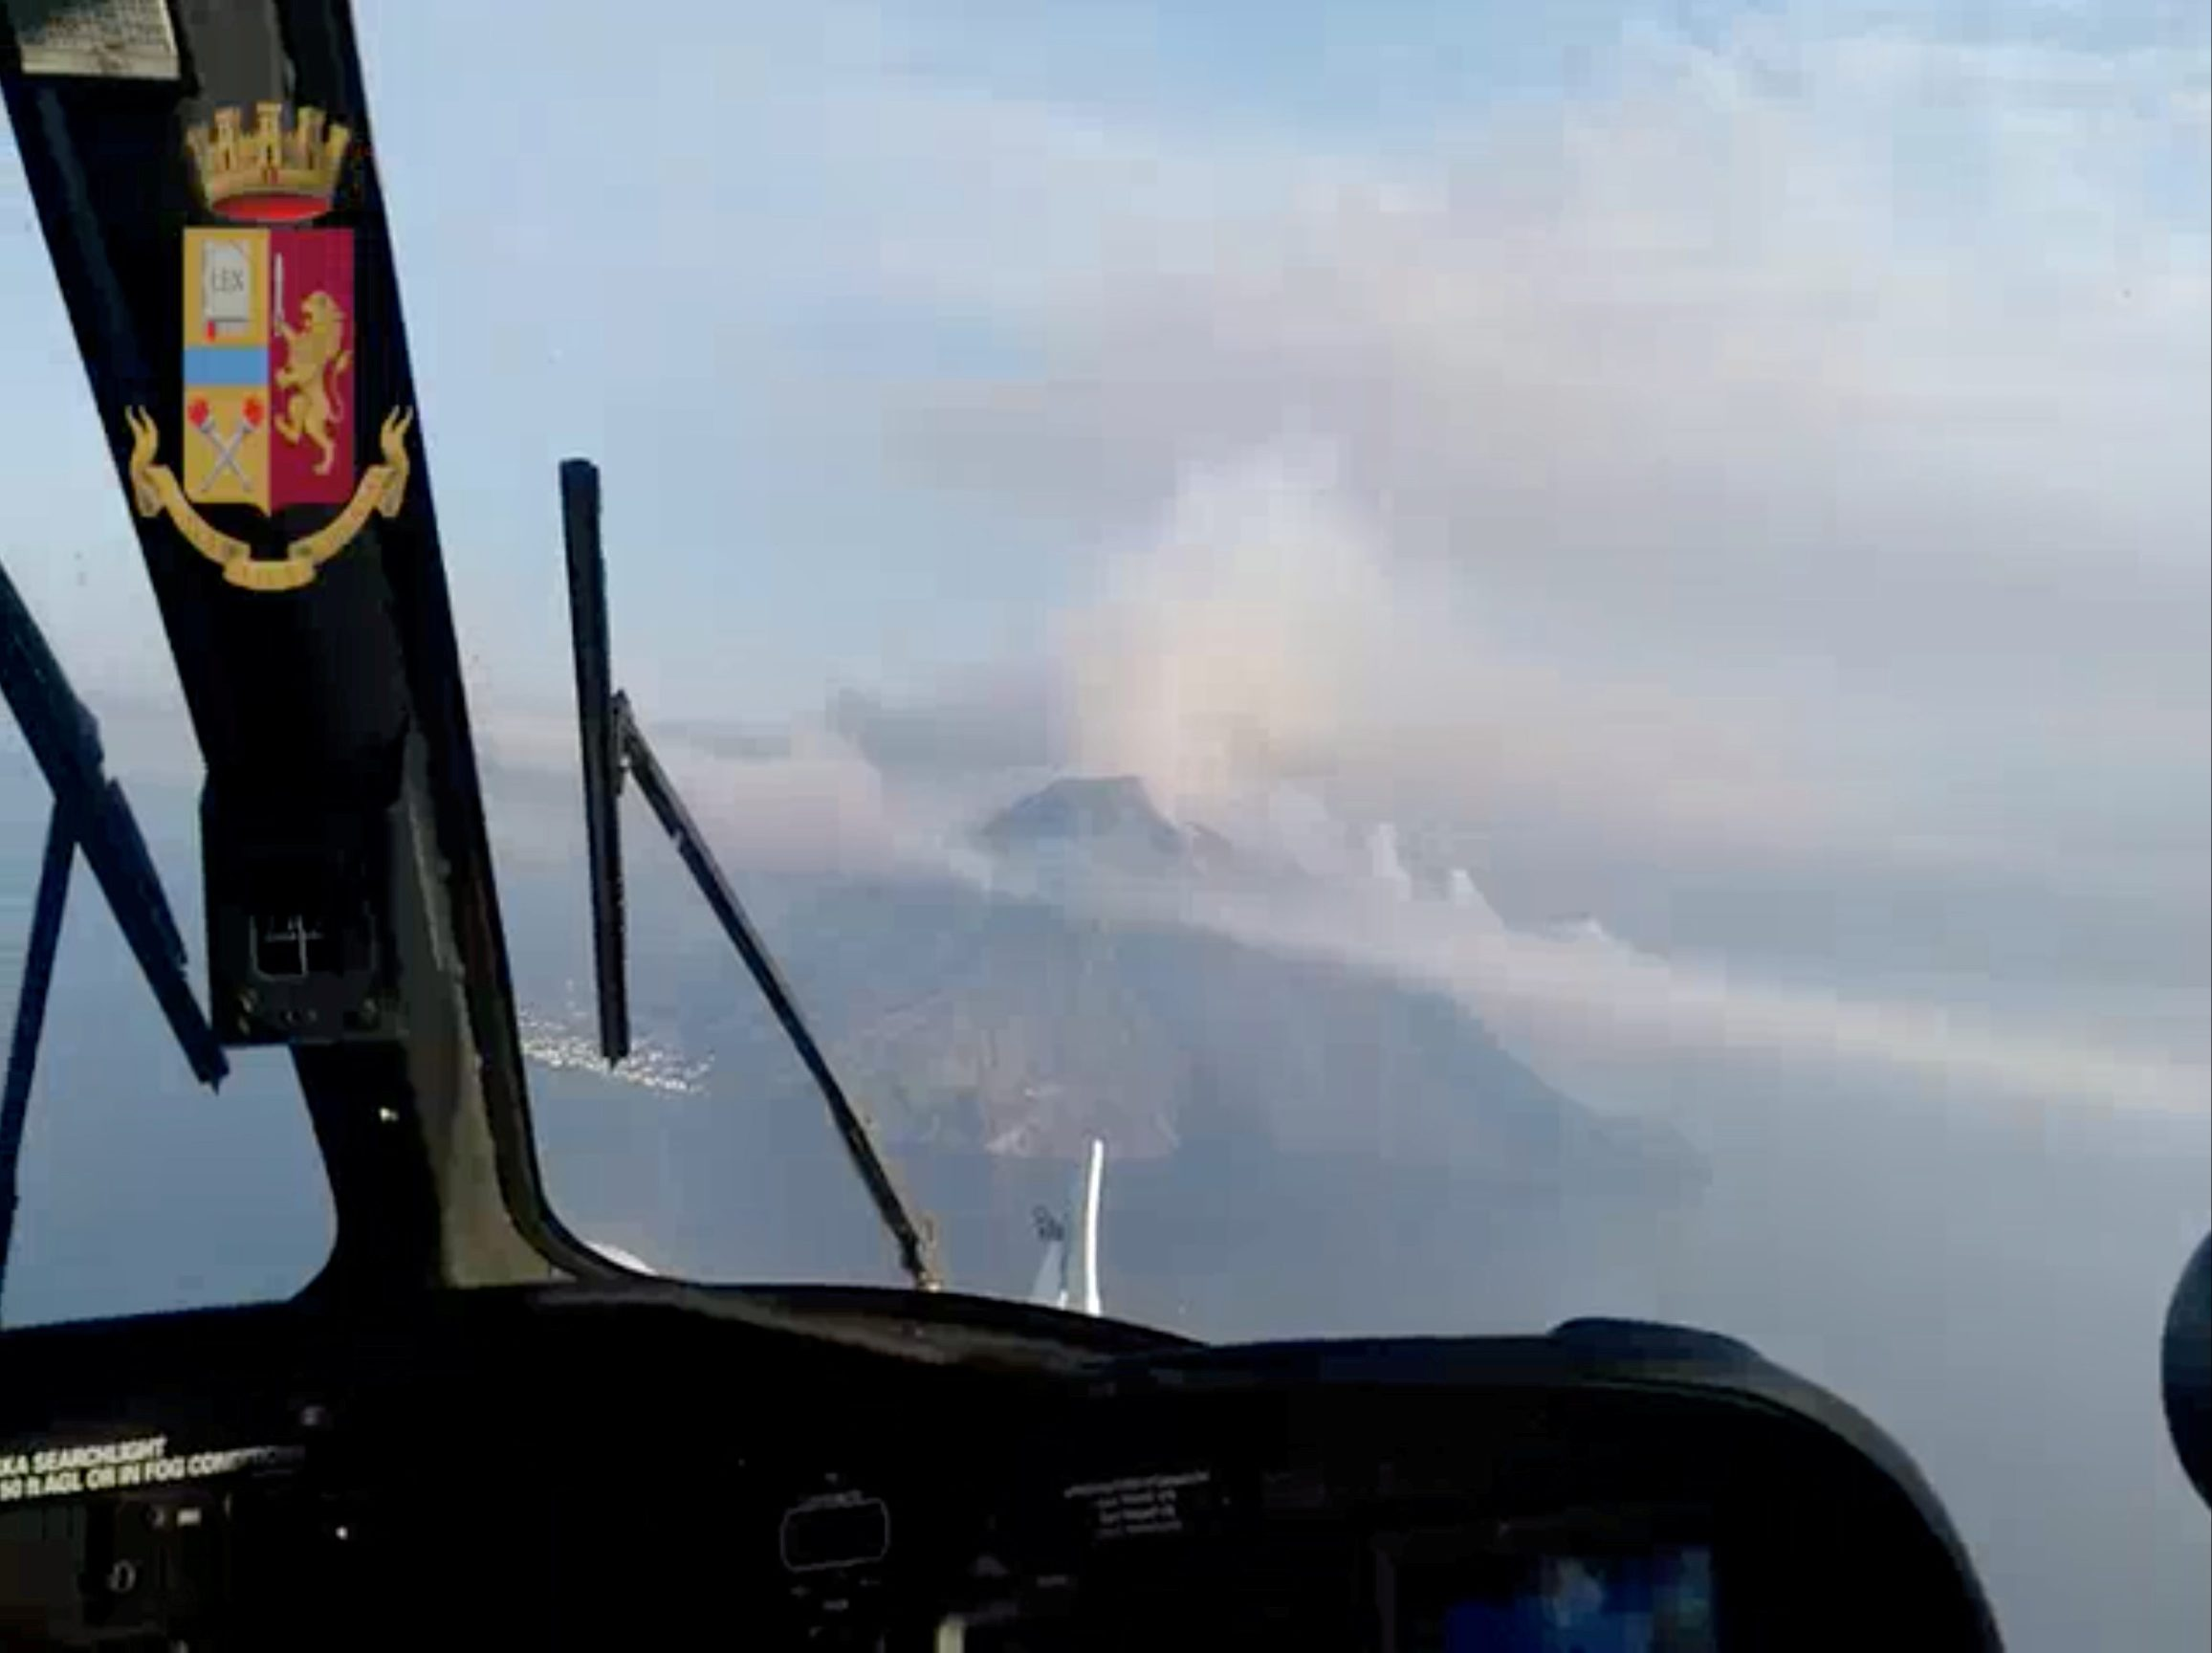 REFILE - QUALITY REPEAT An aerial still image taken from police helicopter video shows ash and smoke rising after a volcanic eruption, seen over Stromboli, Italy July 3, 2019. Polizia di Stato/Handout via REUTERS ATTENTION EDITORS - THIS IMAGE HAS BEEN SUPPLIED BY A THIRD PARTY.